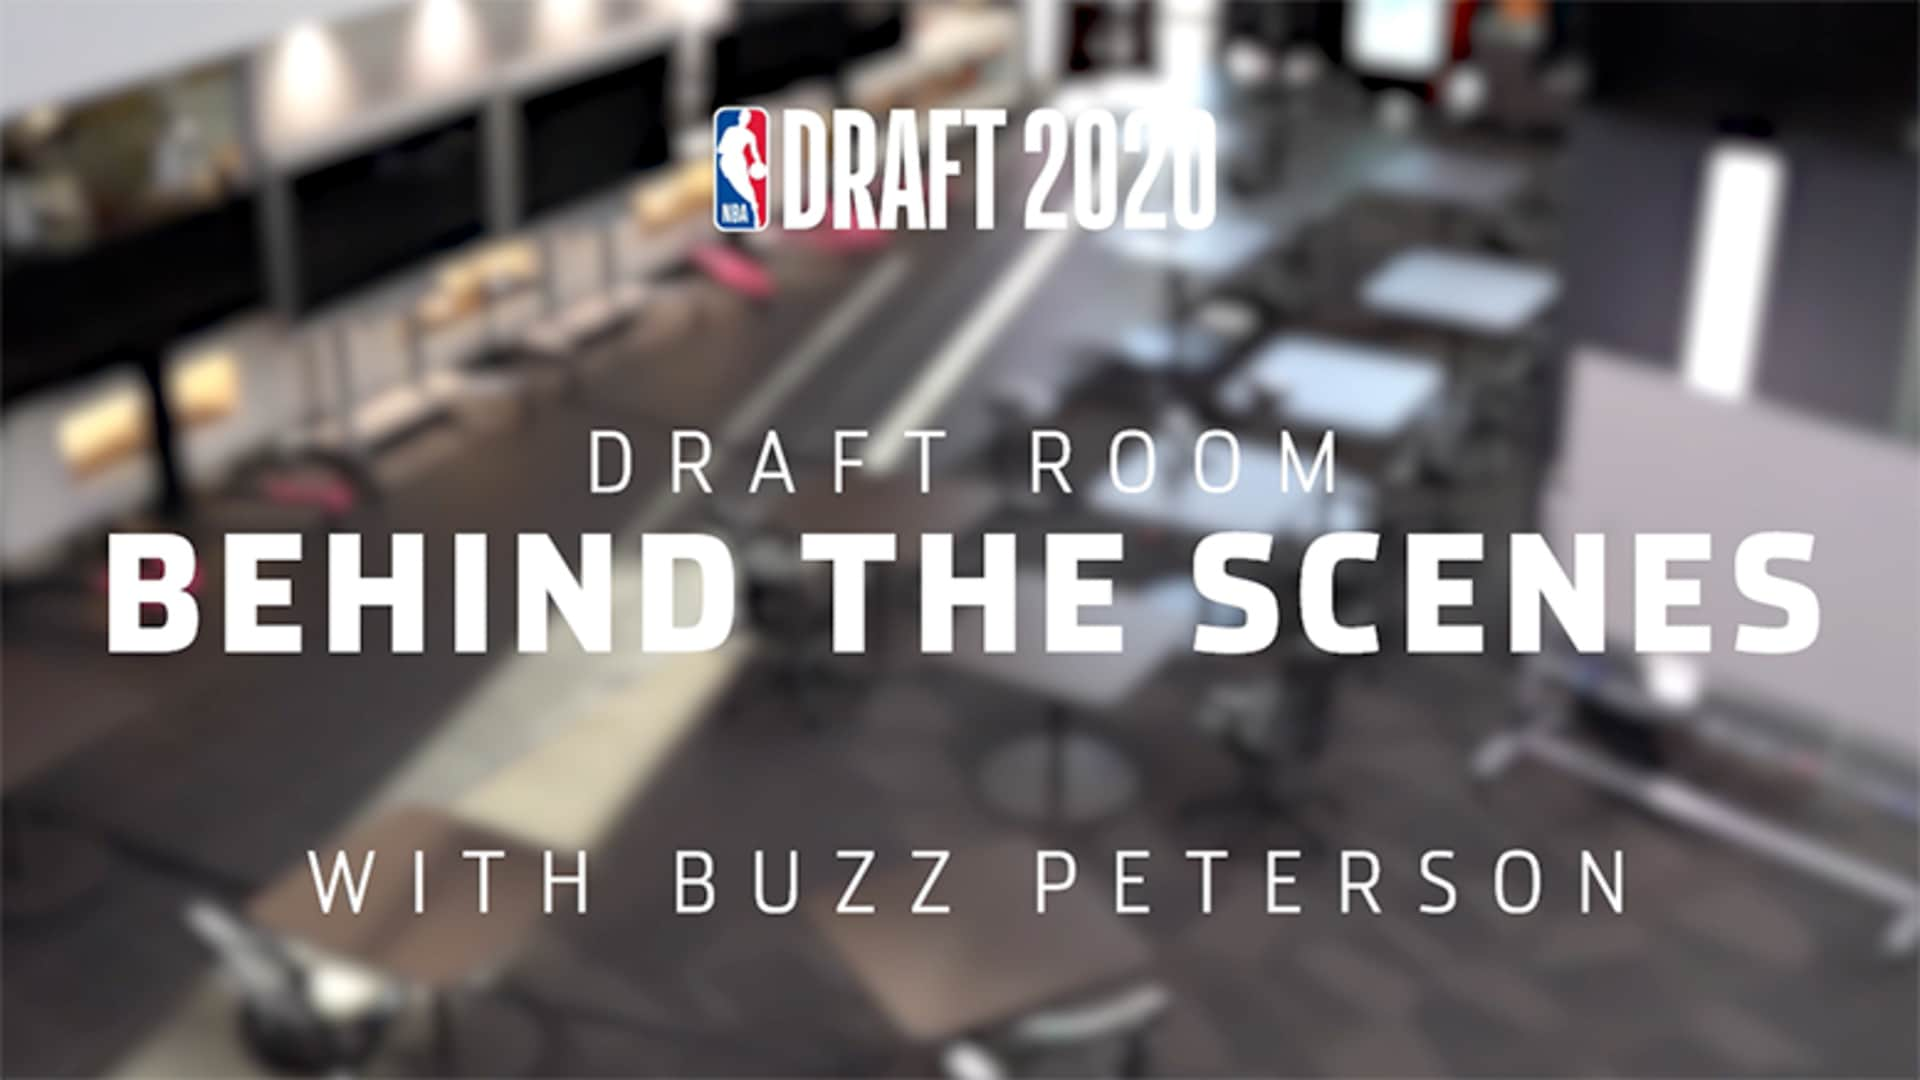 Hornets Draft Room Behind the Scenes with Buzz Peterson